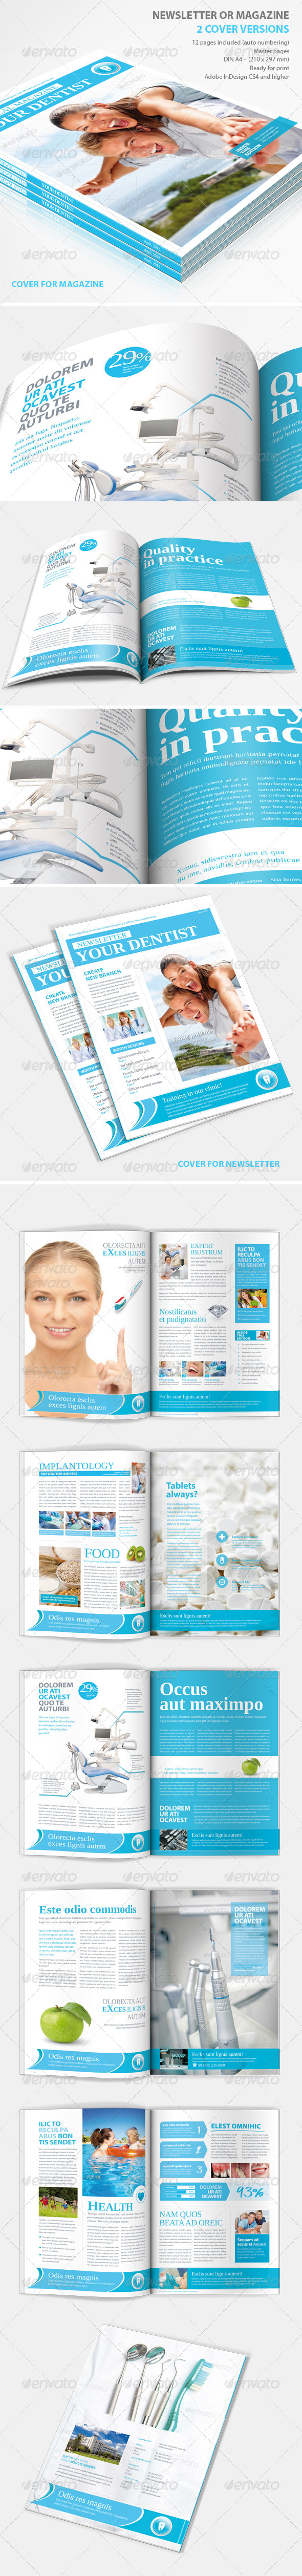 GraphicRiver Medical Newsletter or Magazine 4574457